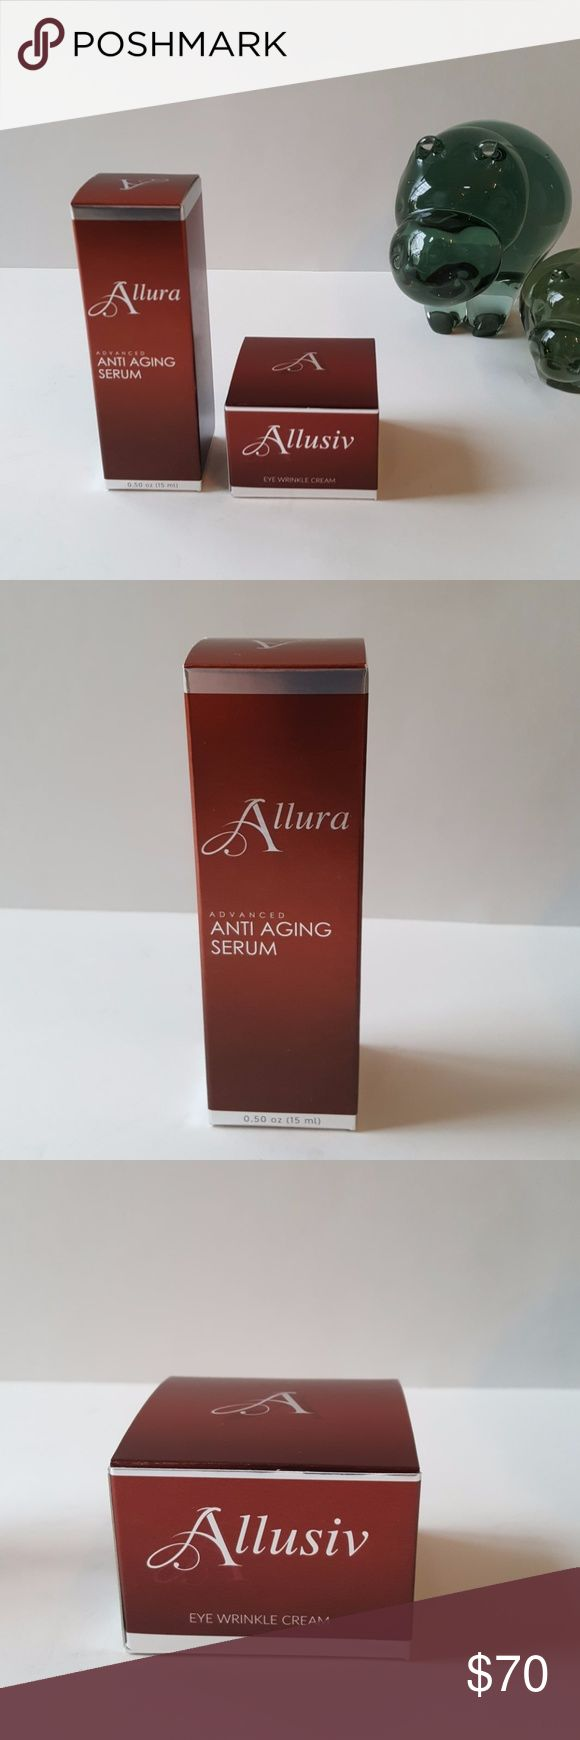 NWT Allura Anti Ageing Serum & Eye Wrinkle Cream Revolutionary Skin Care - Allura Advanced Anti Ageing Serum 0.50 oz (15ml) & Allusiv Eye Wrinkle Cream 0.50 oz (15ml) Reduces Fines Lines & Wrinkles Makes Skin Look Younger Skin Glows With Youthfulness  Diminishes Dark Circles Permanent Effects 100% Natural Made In The USA NWT Sealed - Would Make An Excellent Christmas Gift Allura Makeup